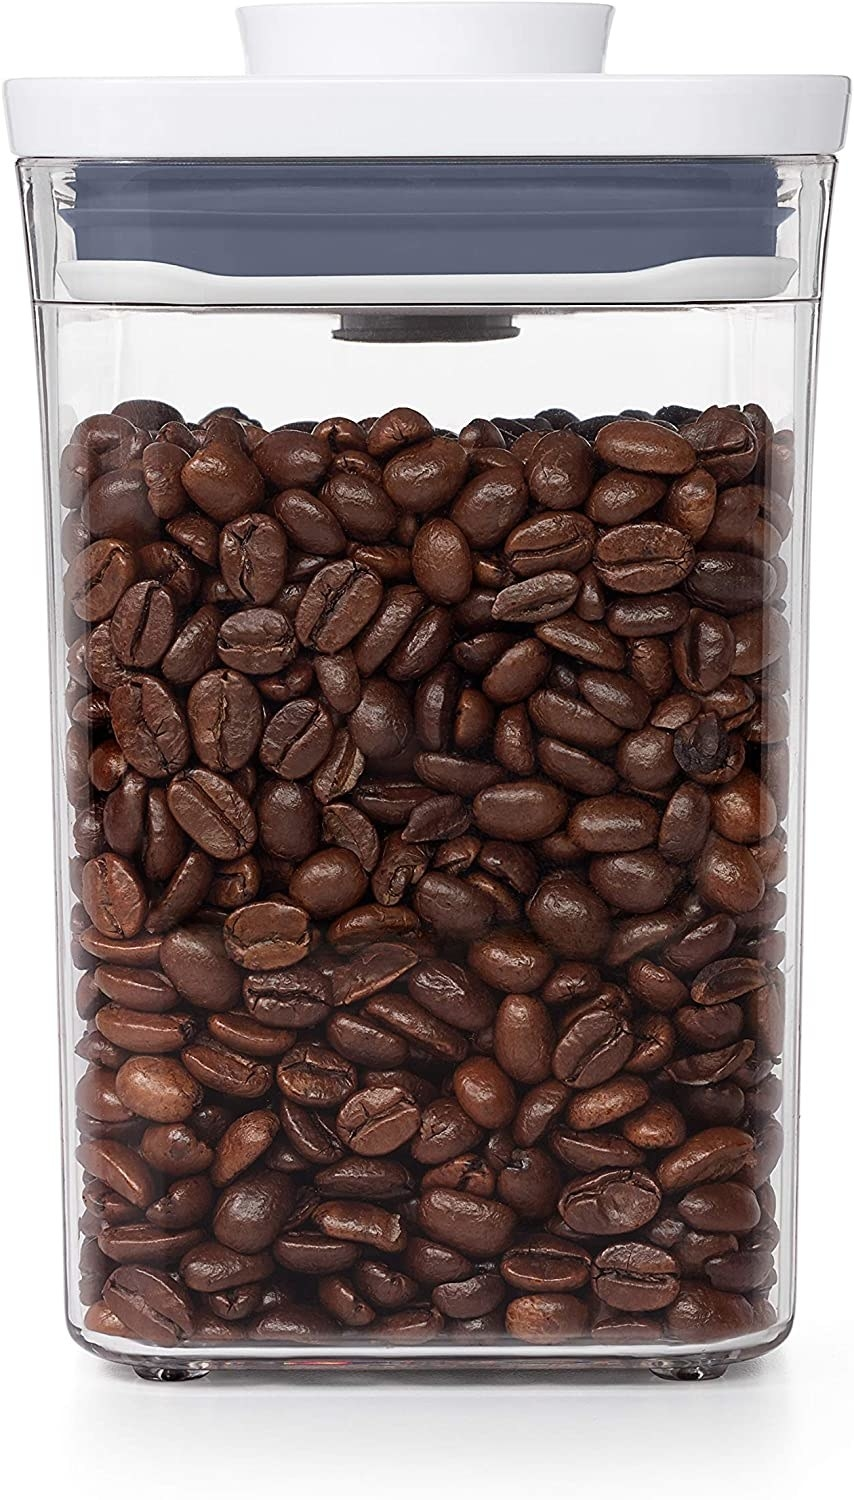 A clear container filled with coffee beans